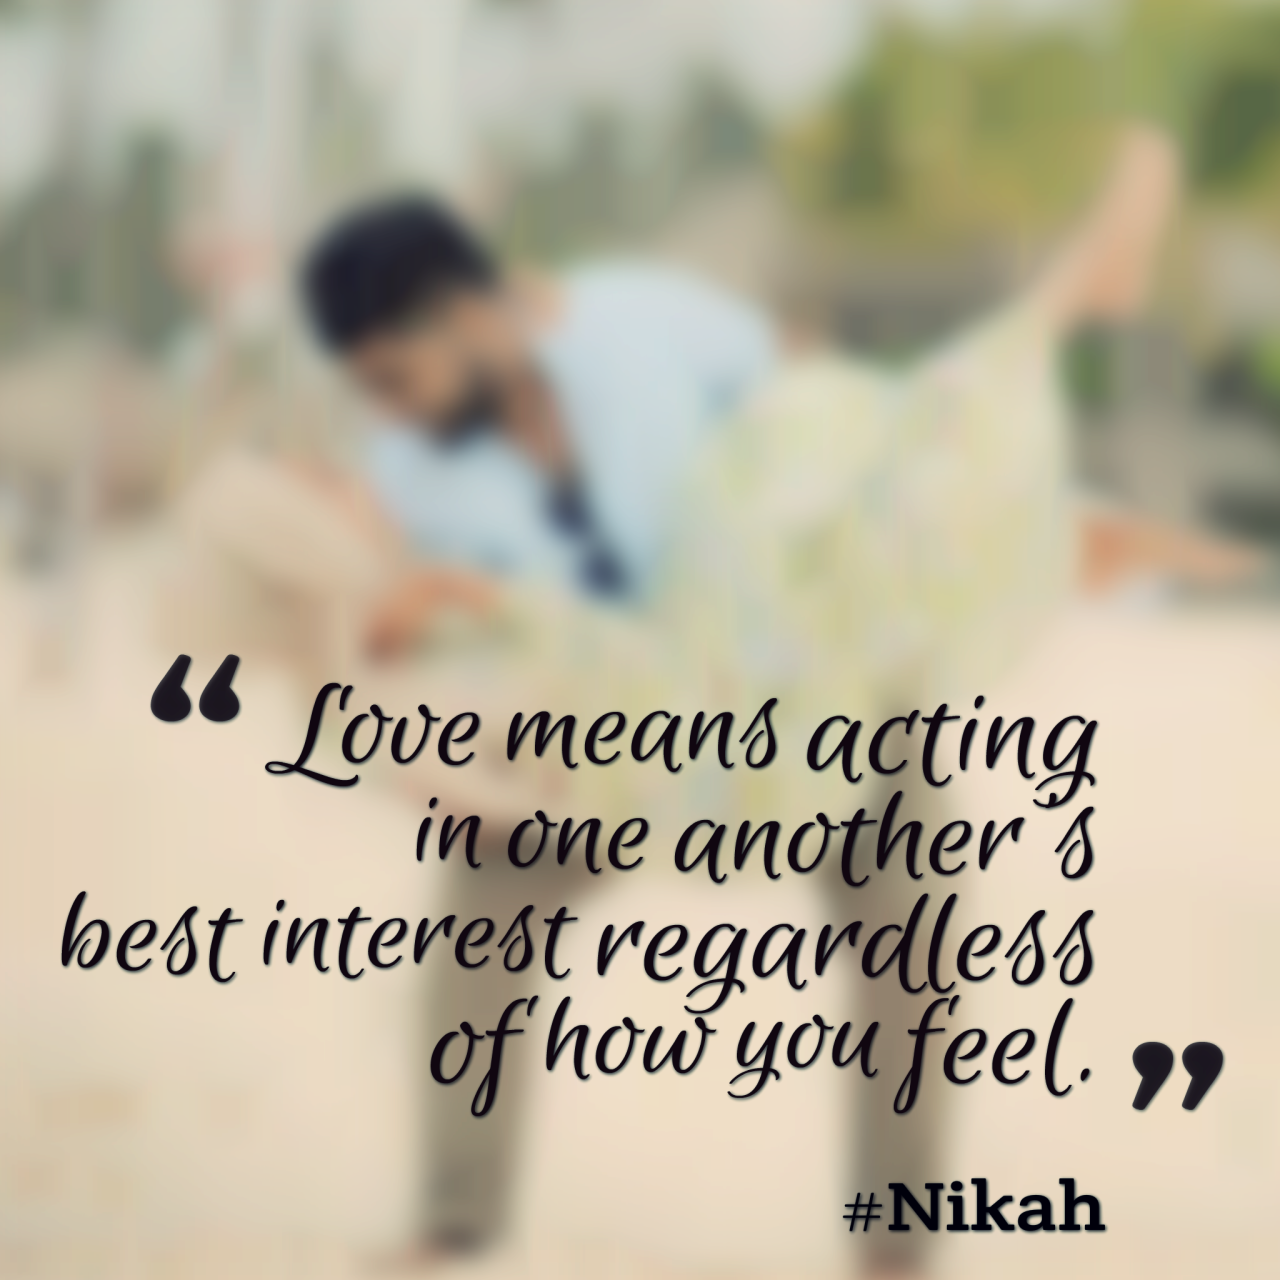 """Love means acting in one another s best interest regardless of how you feel"